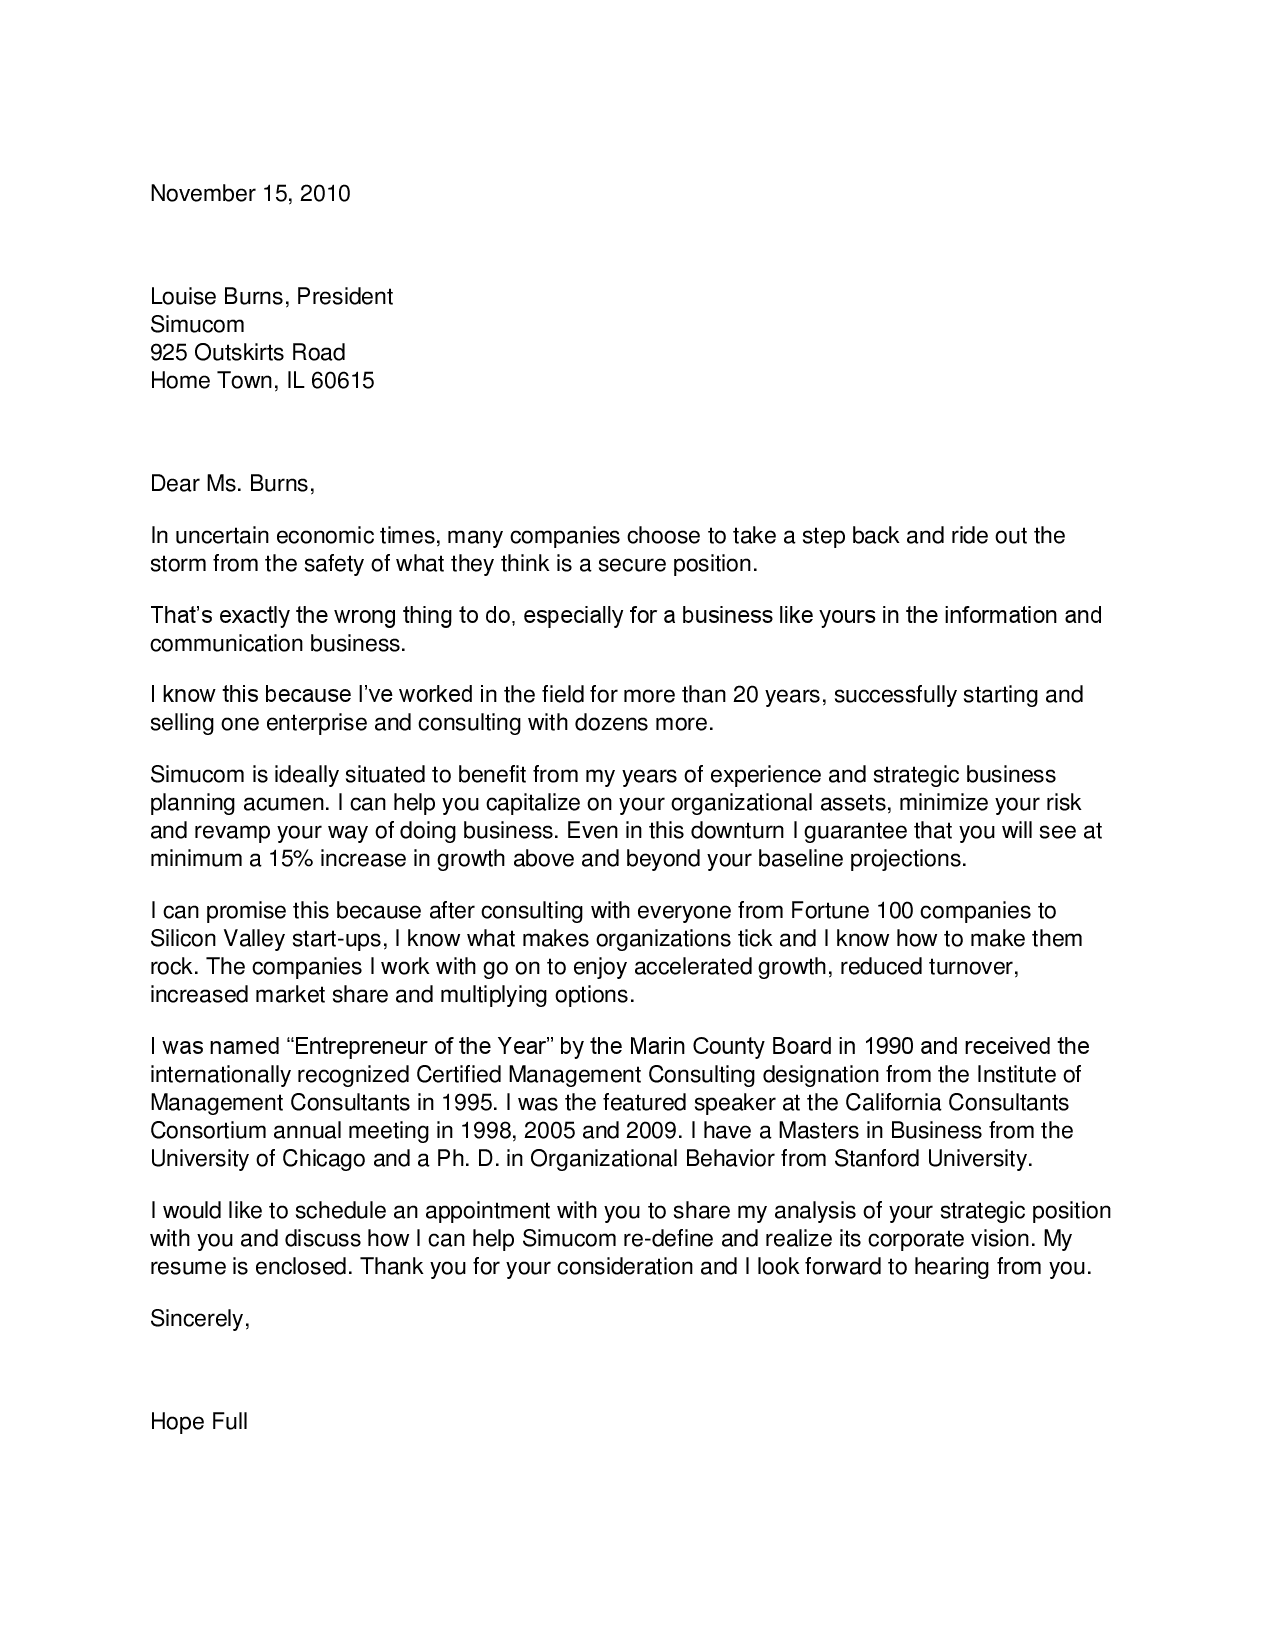 TEXT VERSION OF THE CONSULTANT COVER LETTER SAMPLE